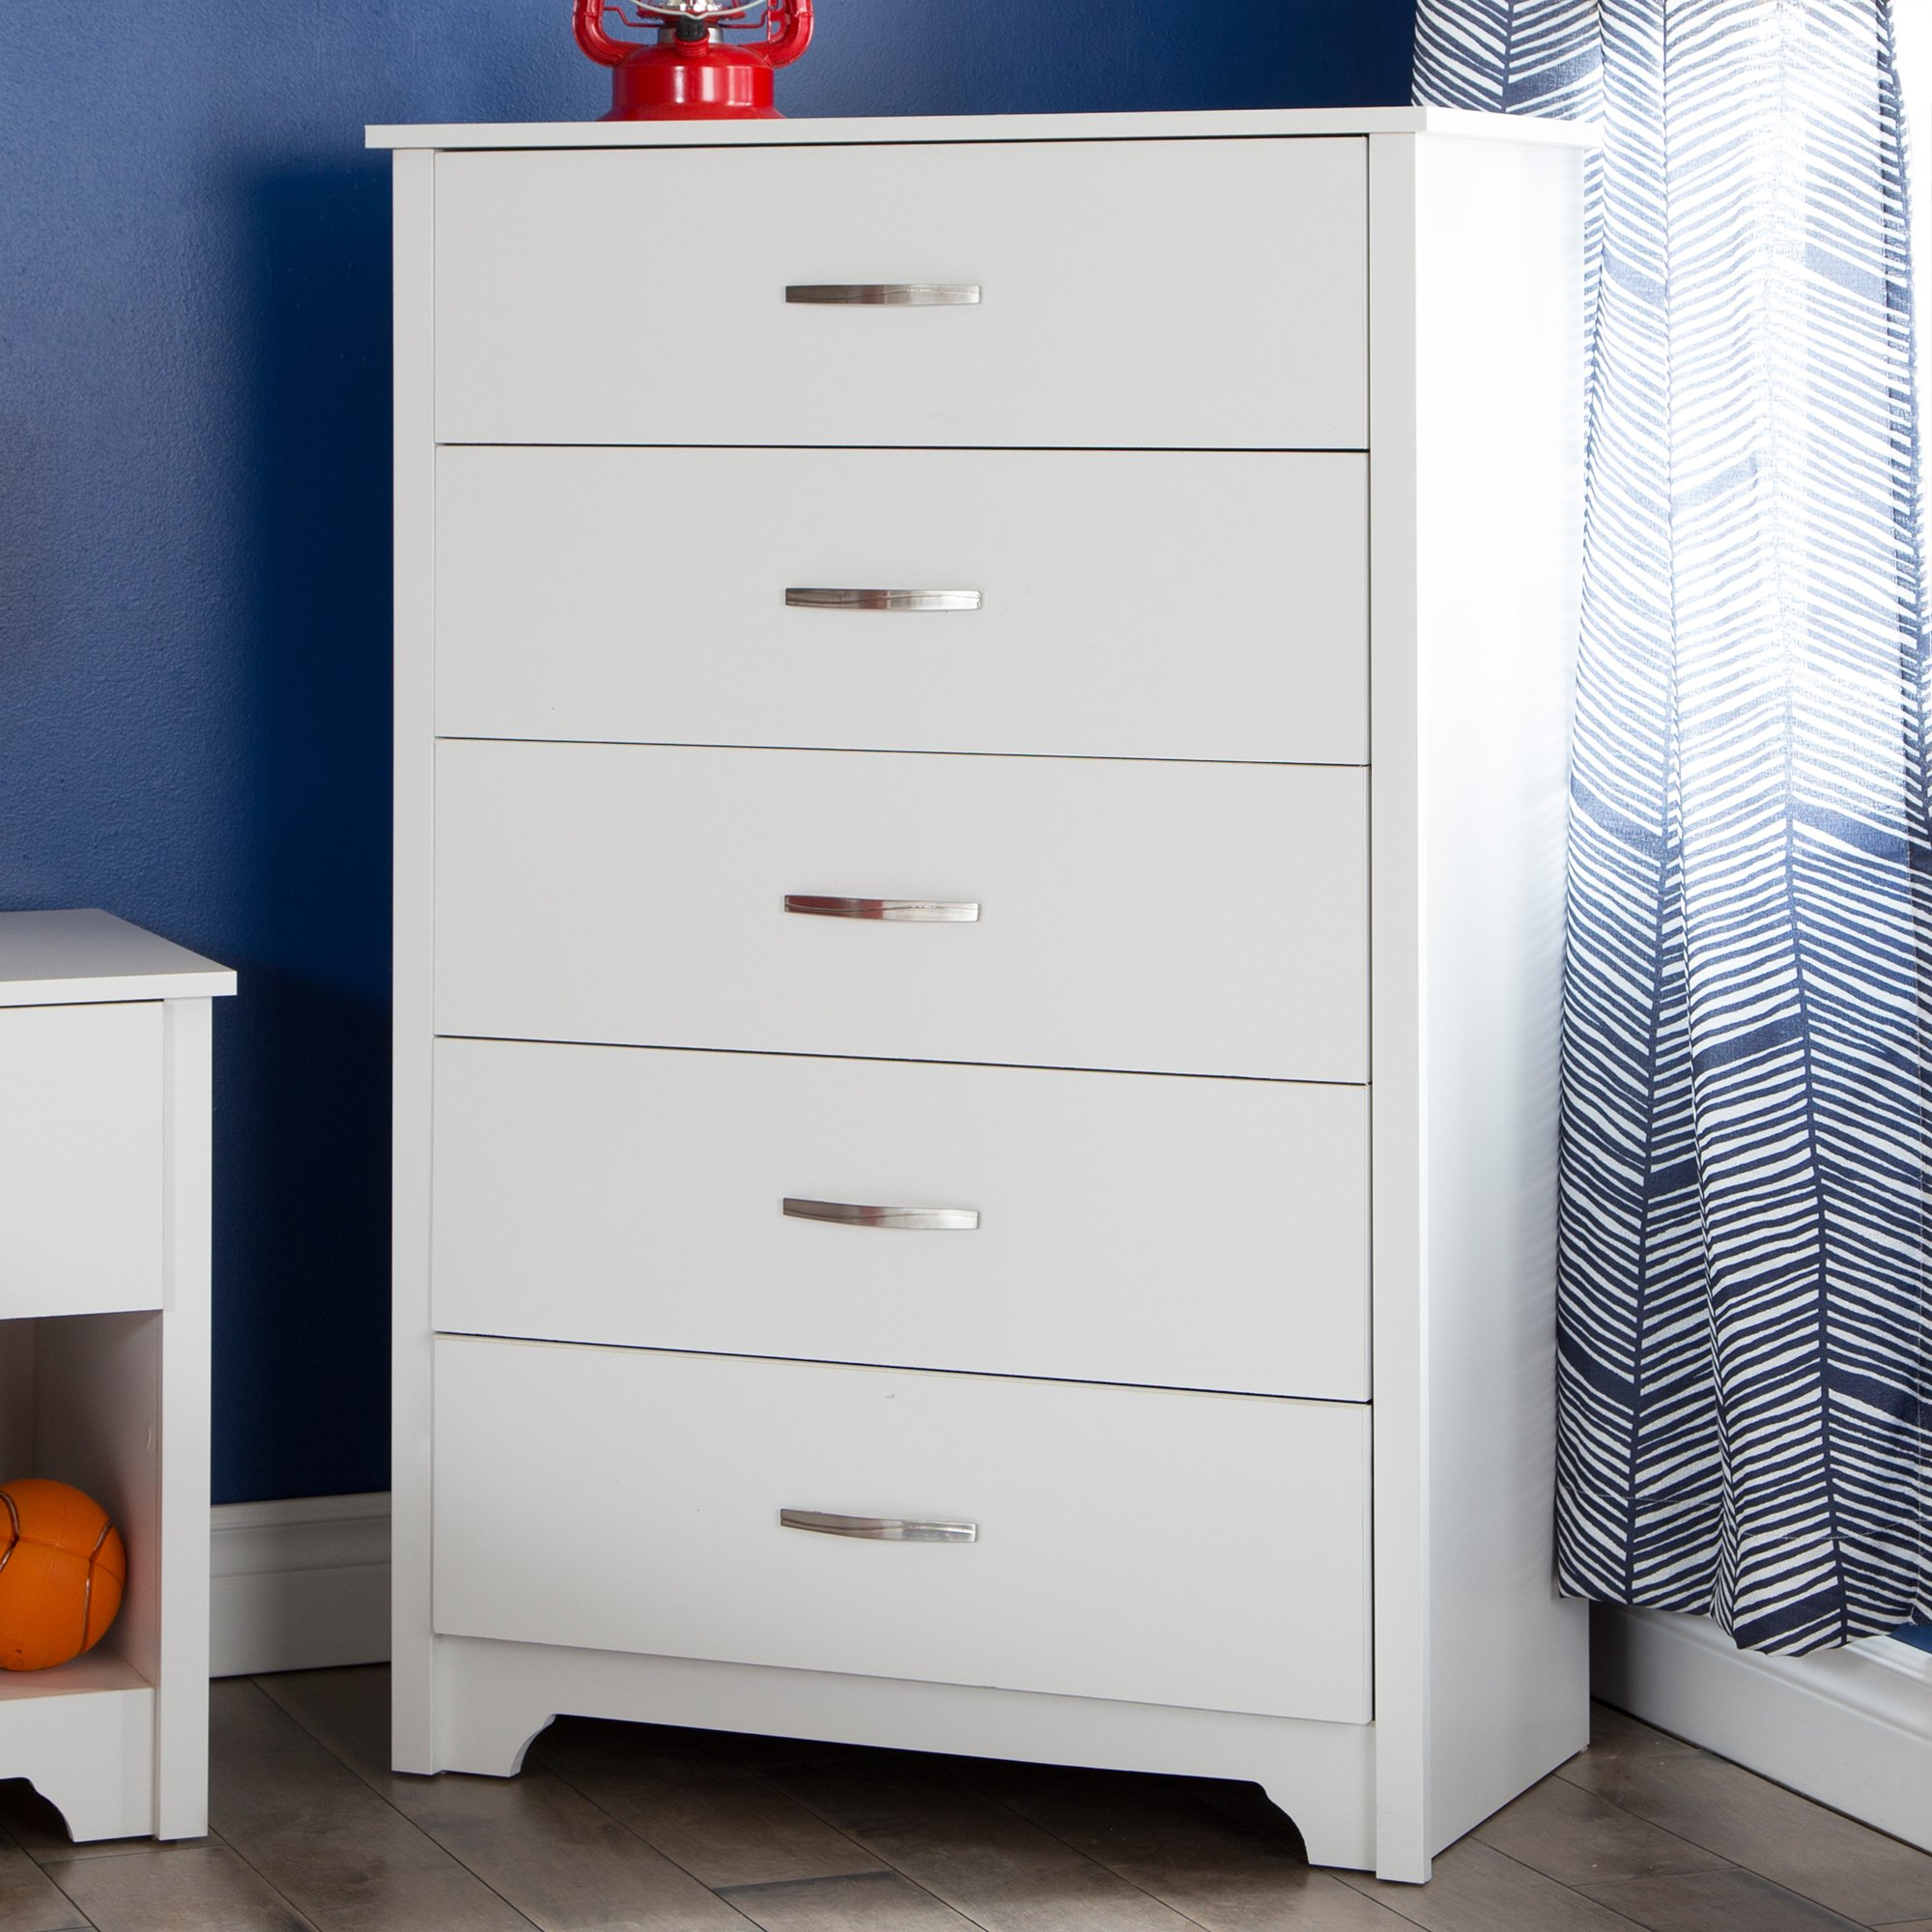 South Shore Fusion 5-Drawer Chest, Pure White by South Shore